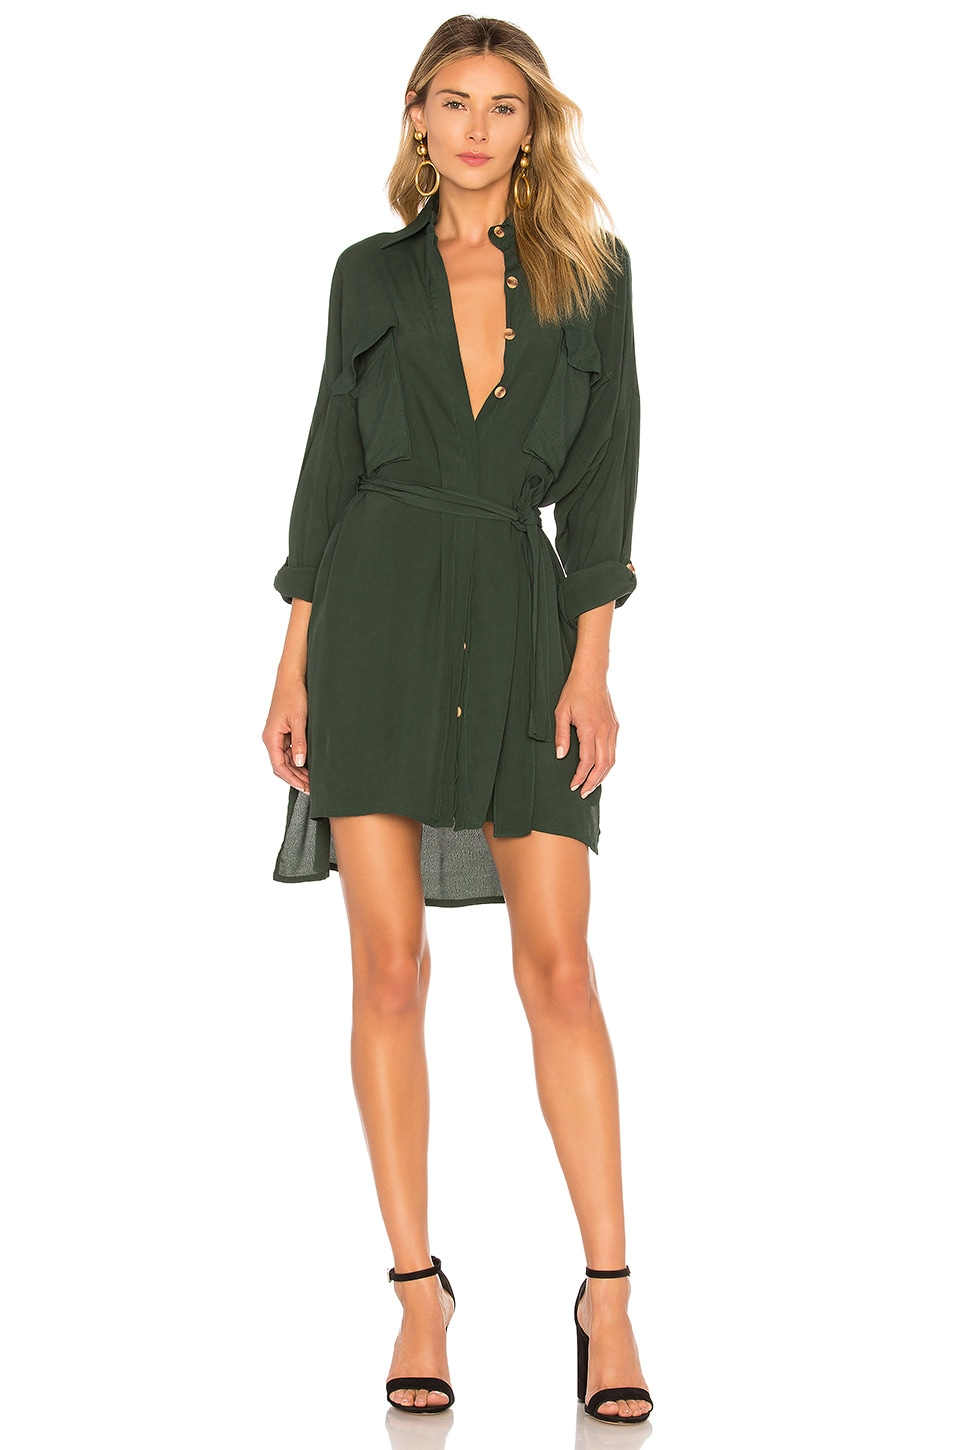 FAITHFULL THE BRAND Debbie Shirt Dress in Pine Green